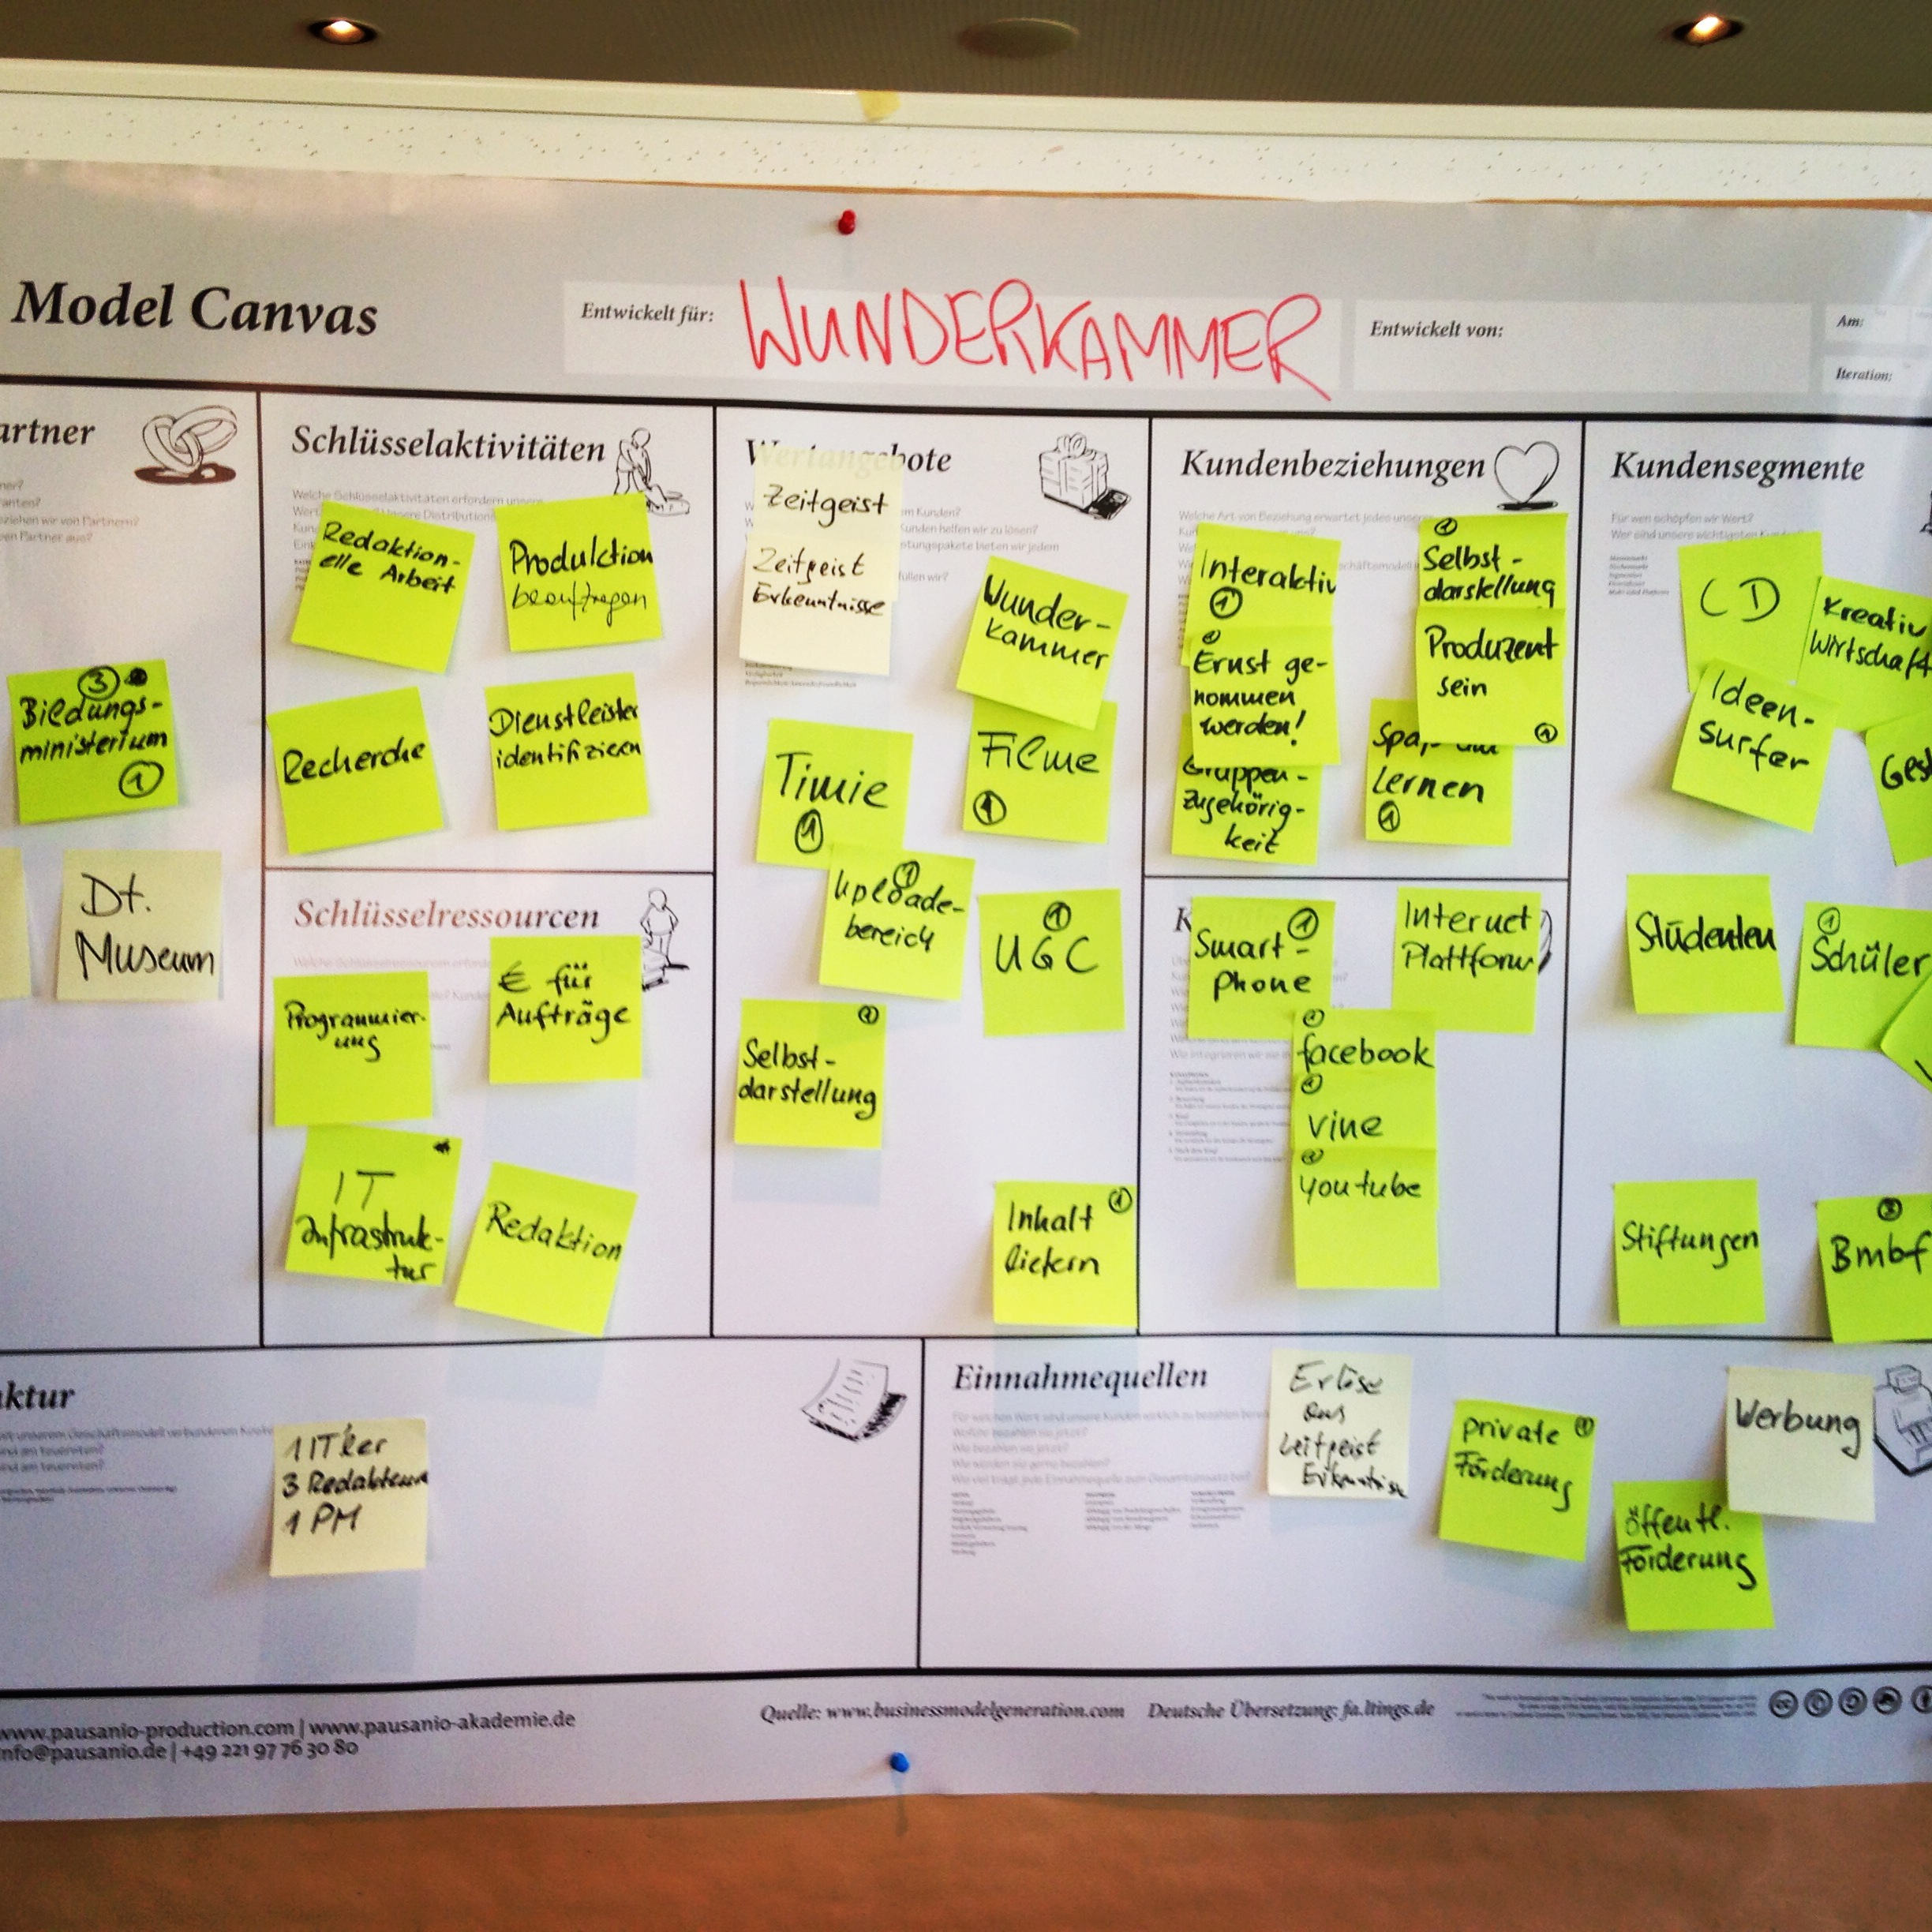 Business Canvas Modell